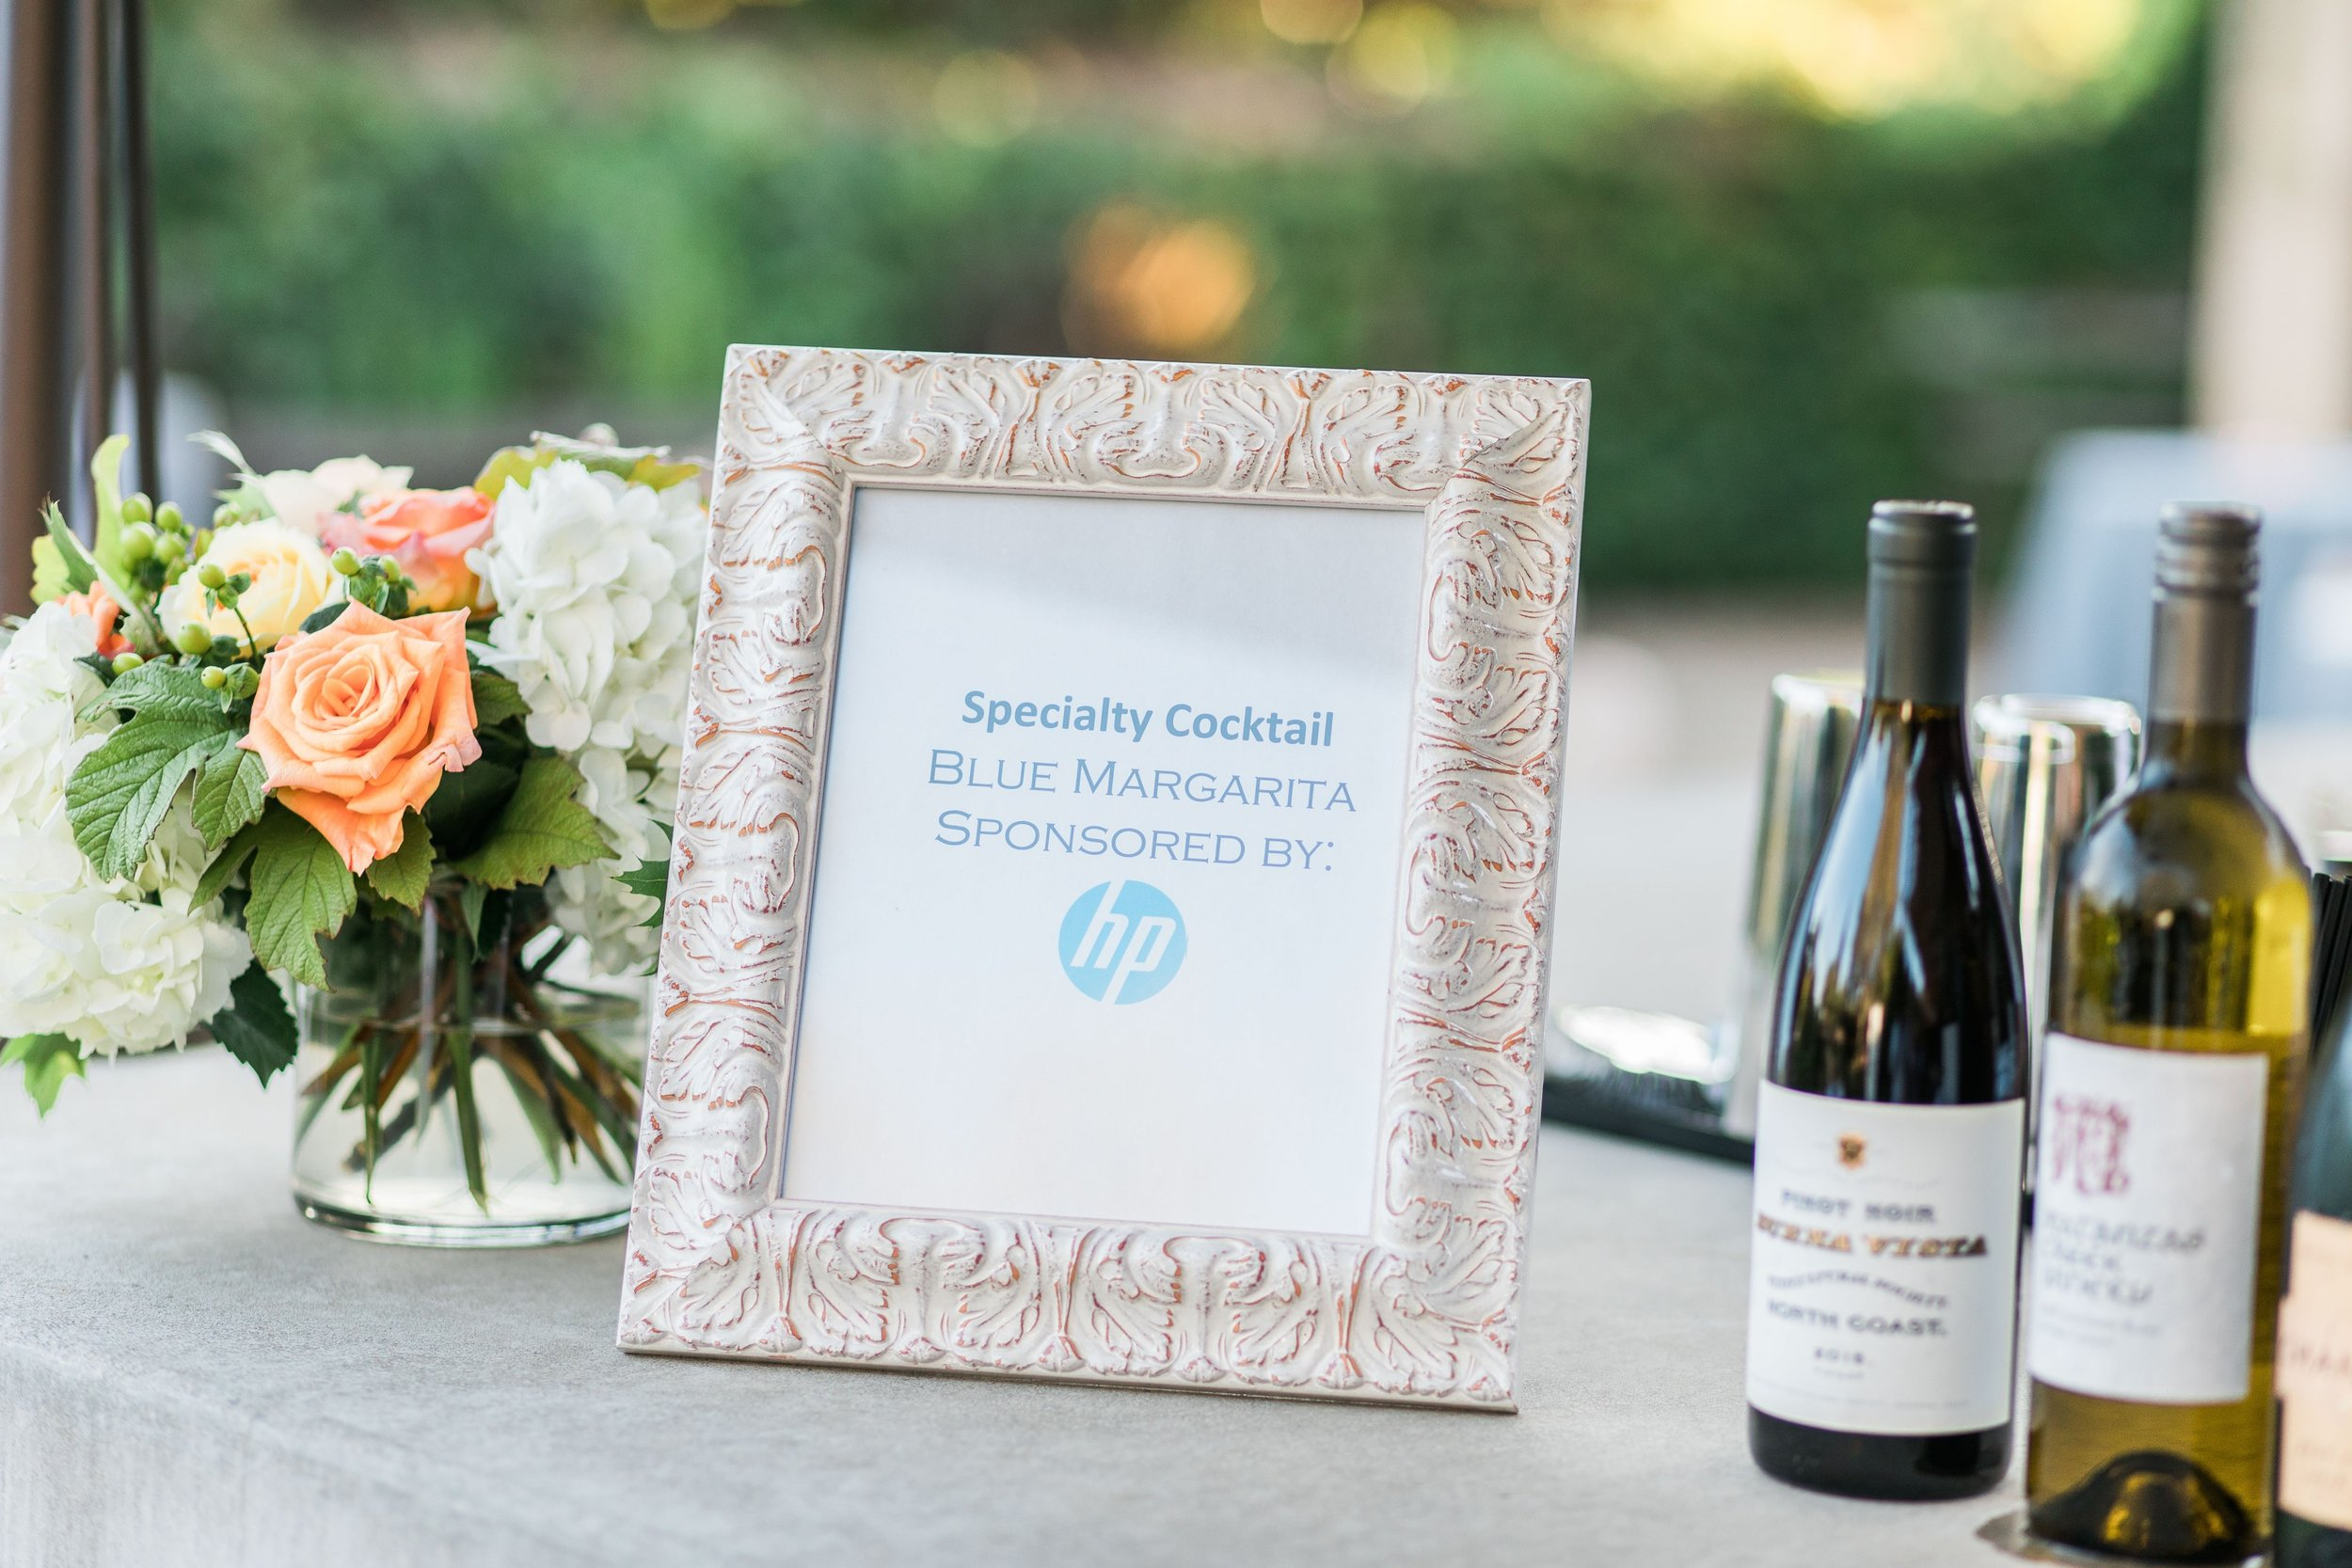 Best-Corporate-Event-Venue-San-Francisco-Ramekins-Sonoma-Photographer-SF-by-JBJ-PIctures (9).jpg